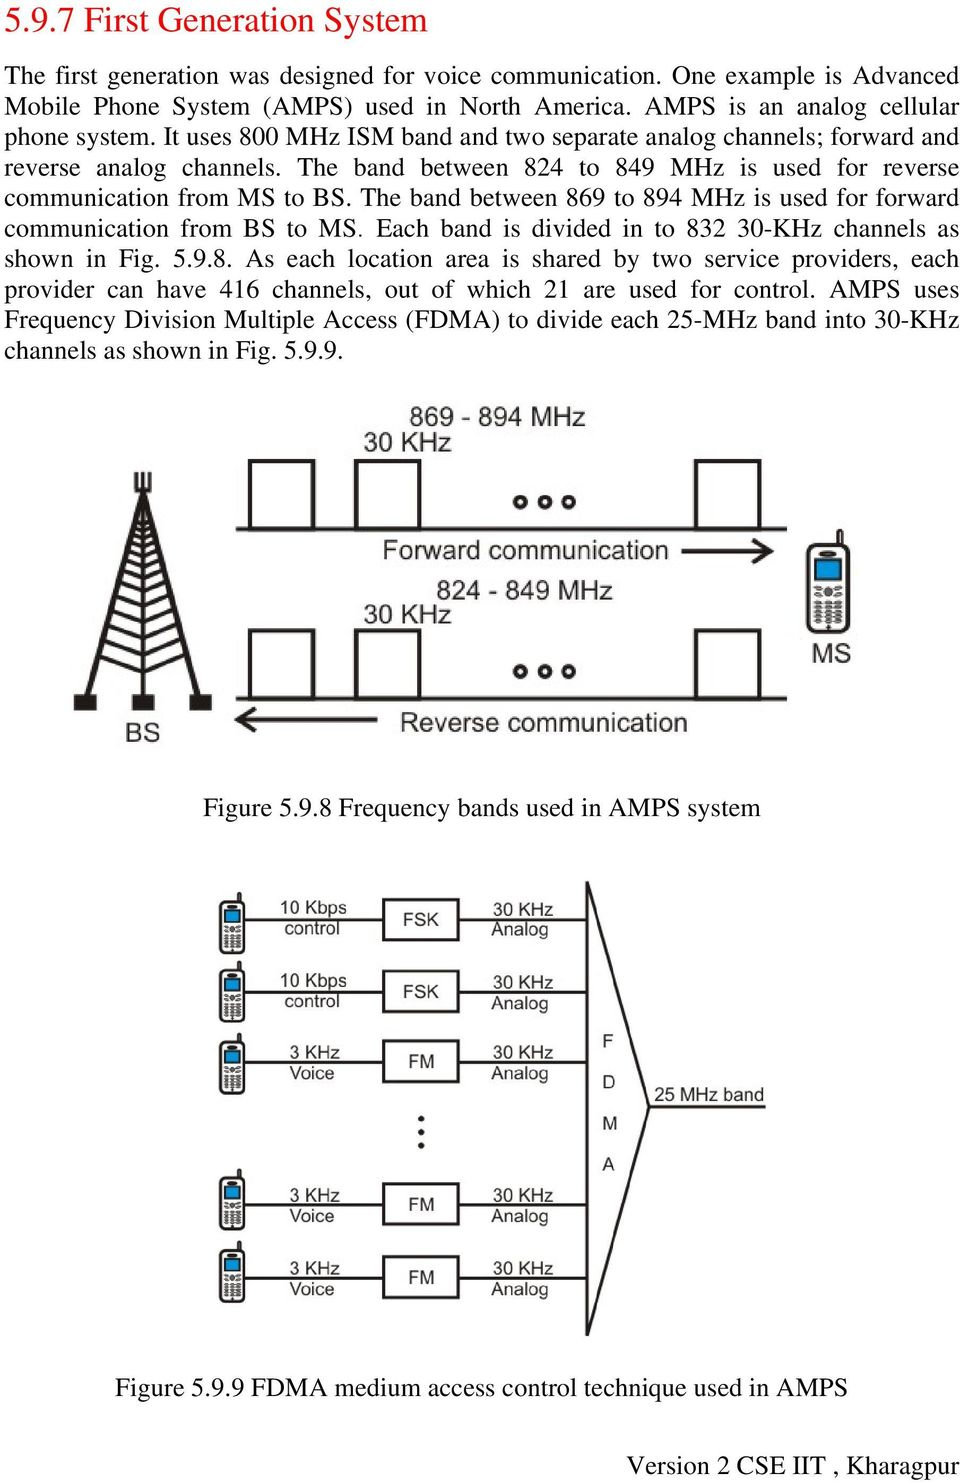 The band between 824 to 849 MHz is used for reverse communication from MS to BS. The band between 869 to 894 MHz is used for forward communication from BS to MS.